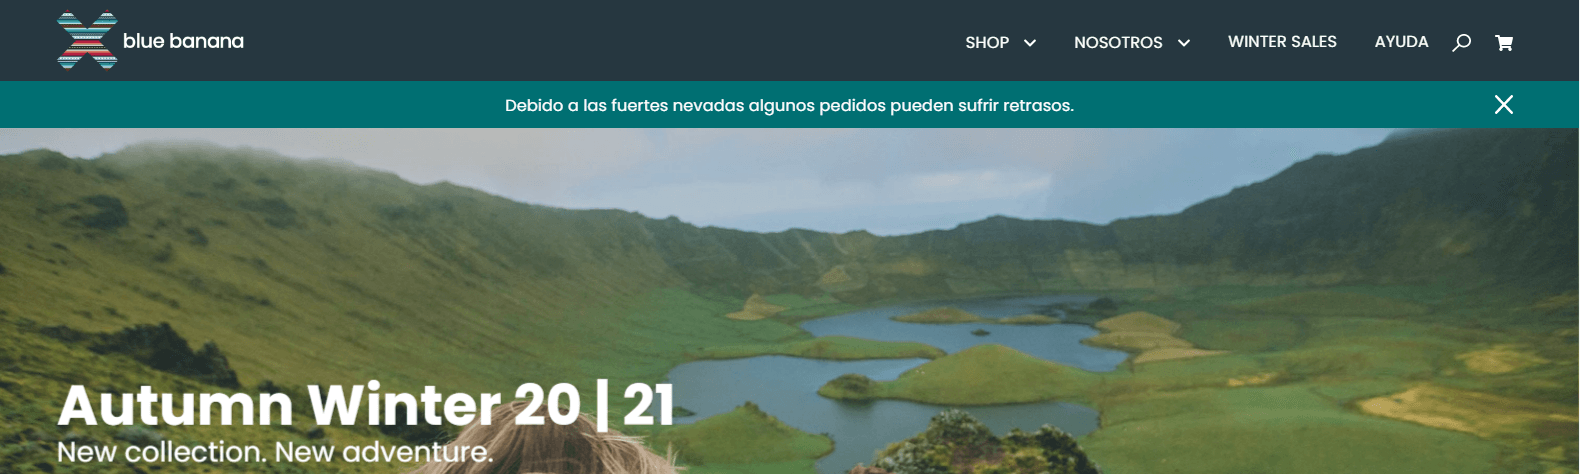 bluebananabrand shopify, facturacion 2020, plantilla shopify